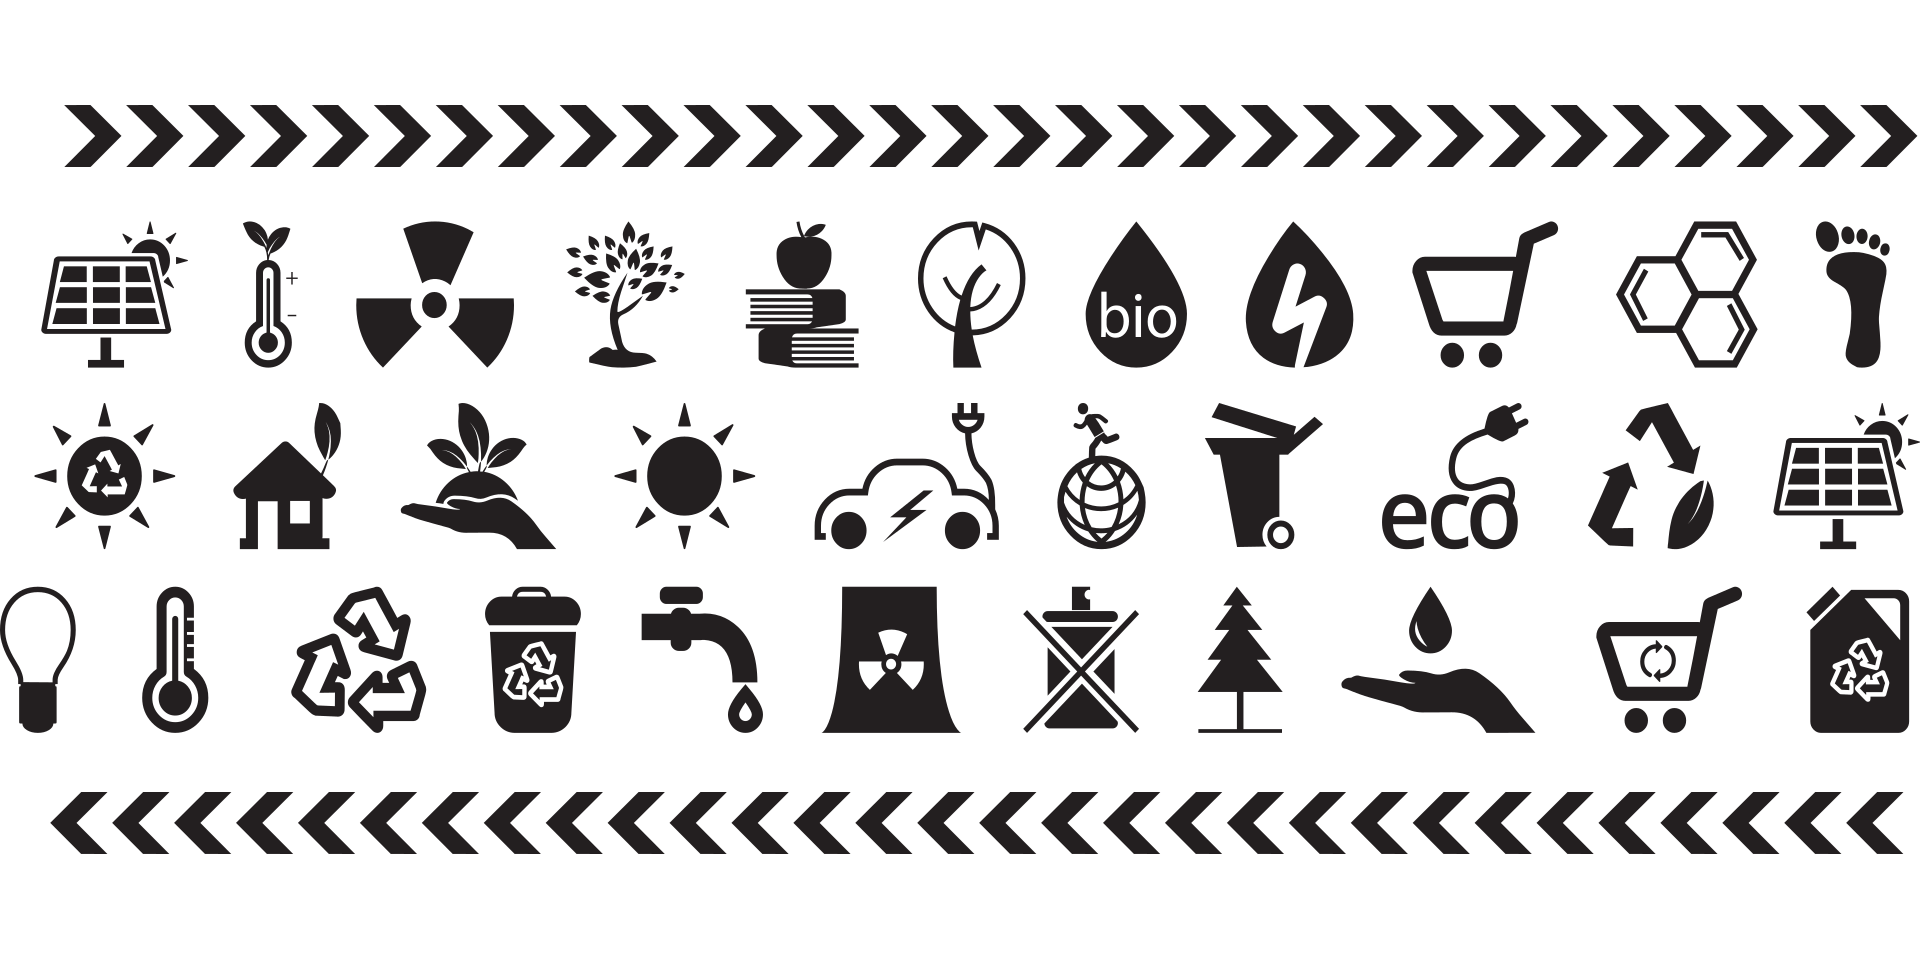 A selection of ecology icons displayed over 3 rows